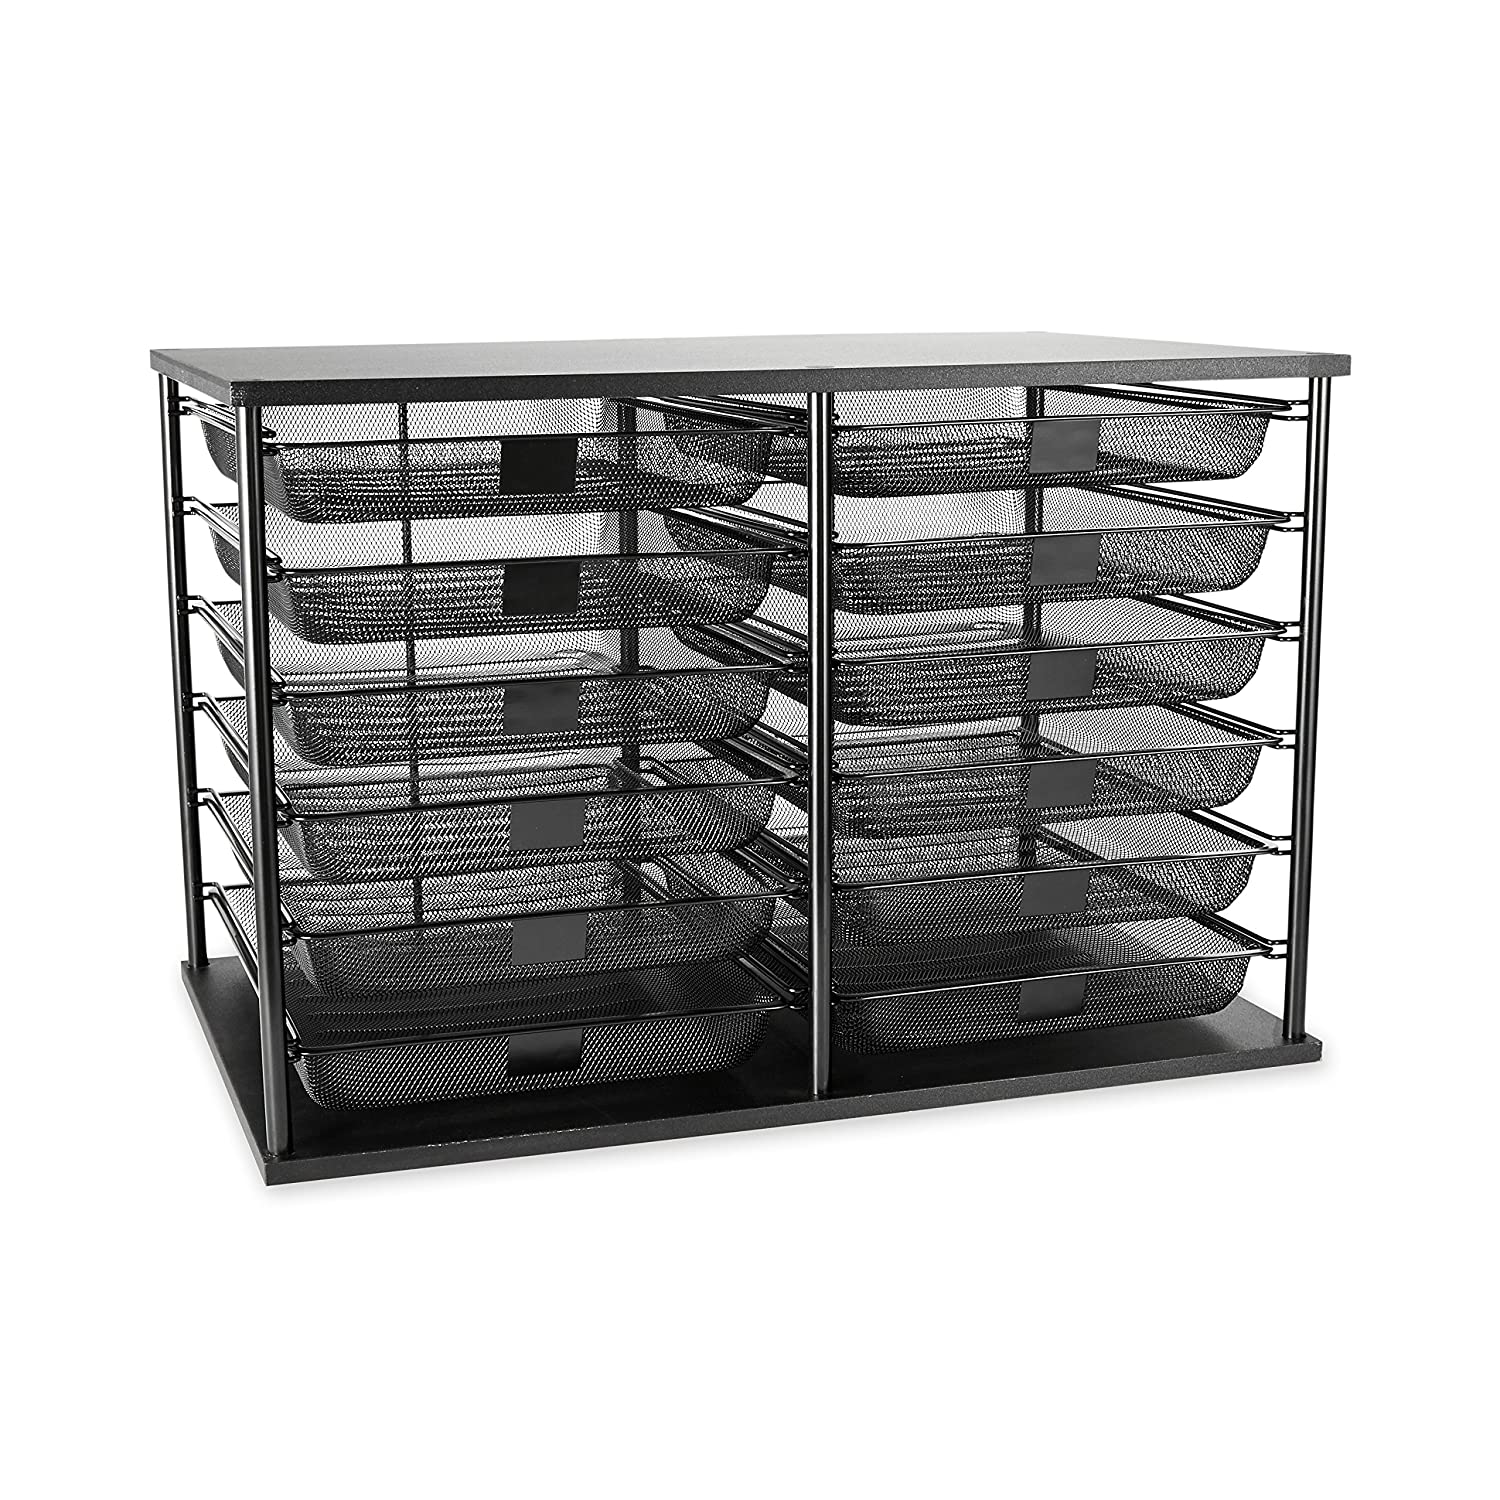 Rubbermaid file organizer tray desk mesh drawer storage - Rubbermaid desk organizer ...